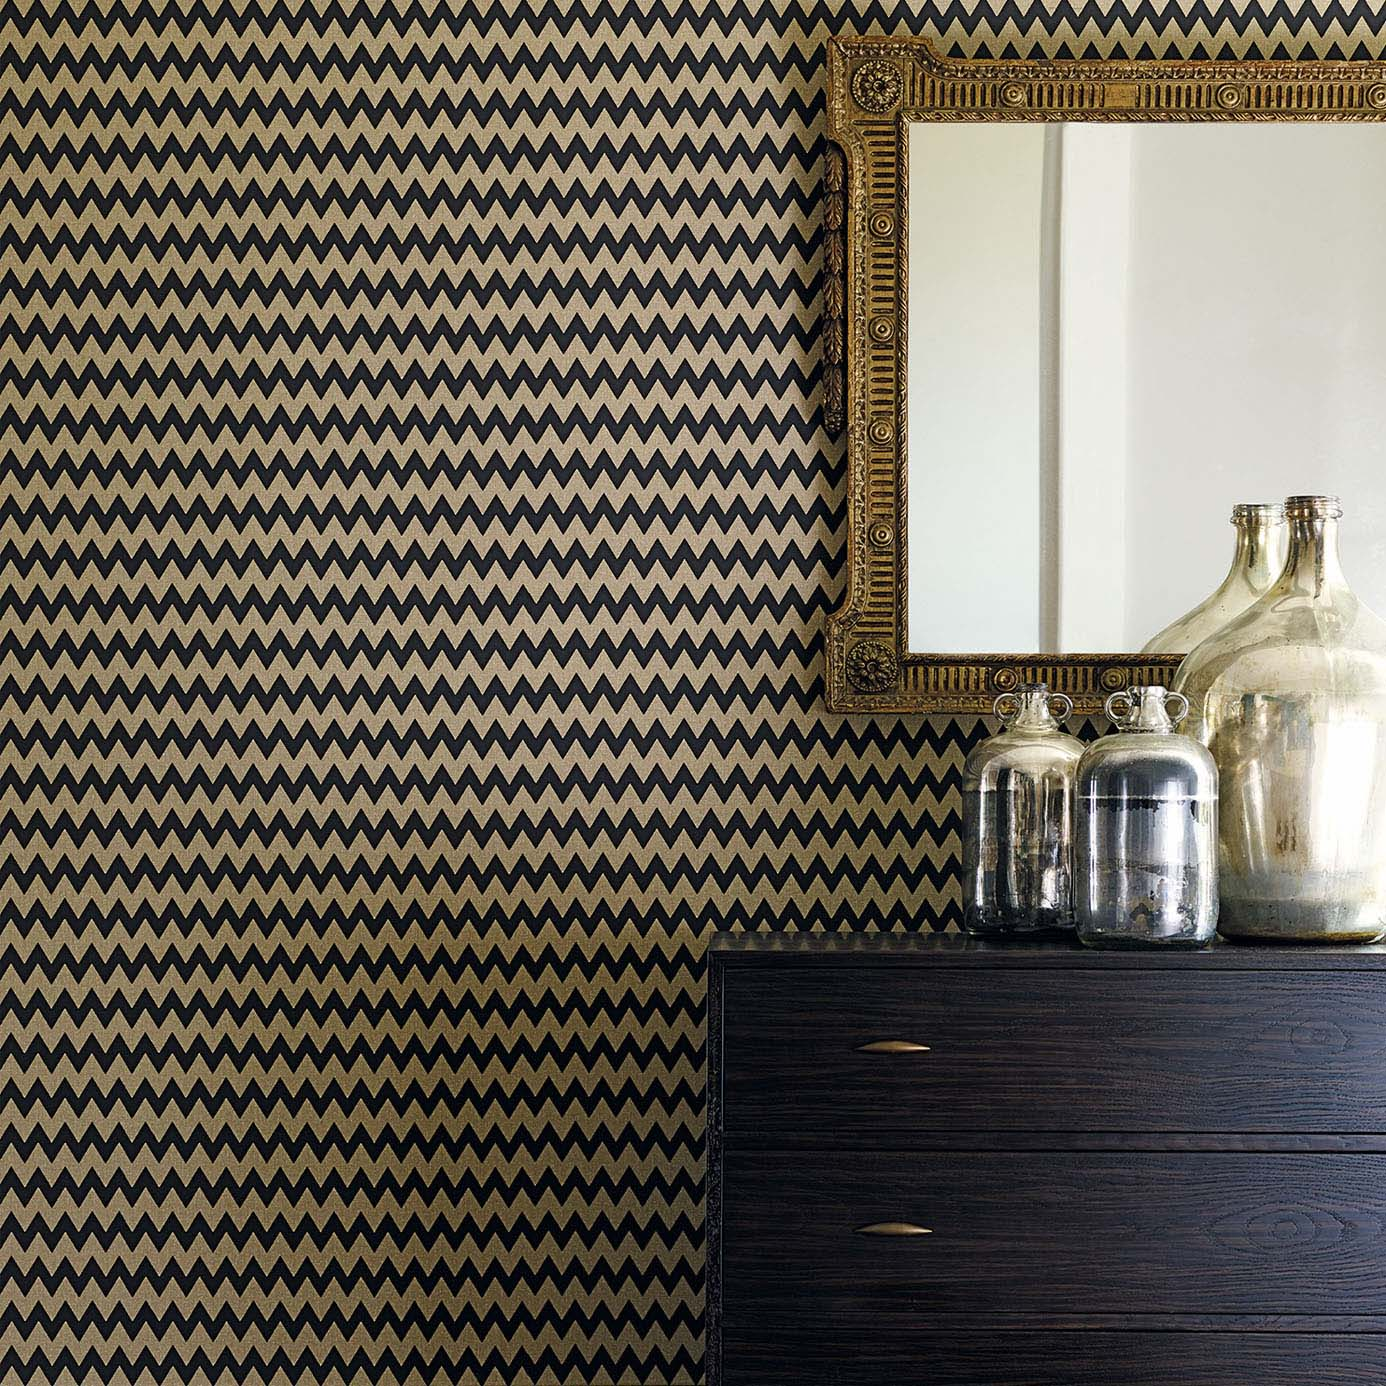 Accessories with wallpaper and furnishings